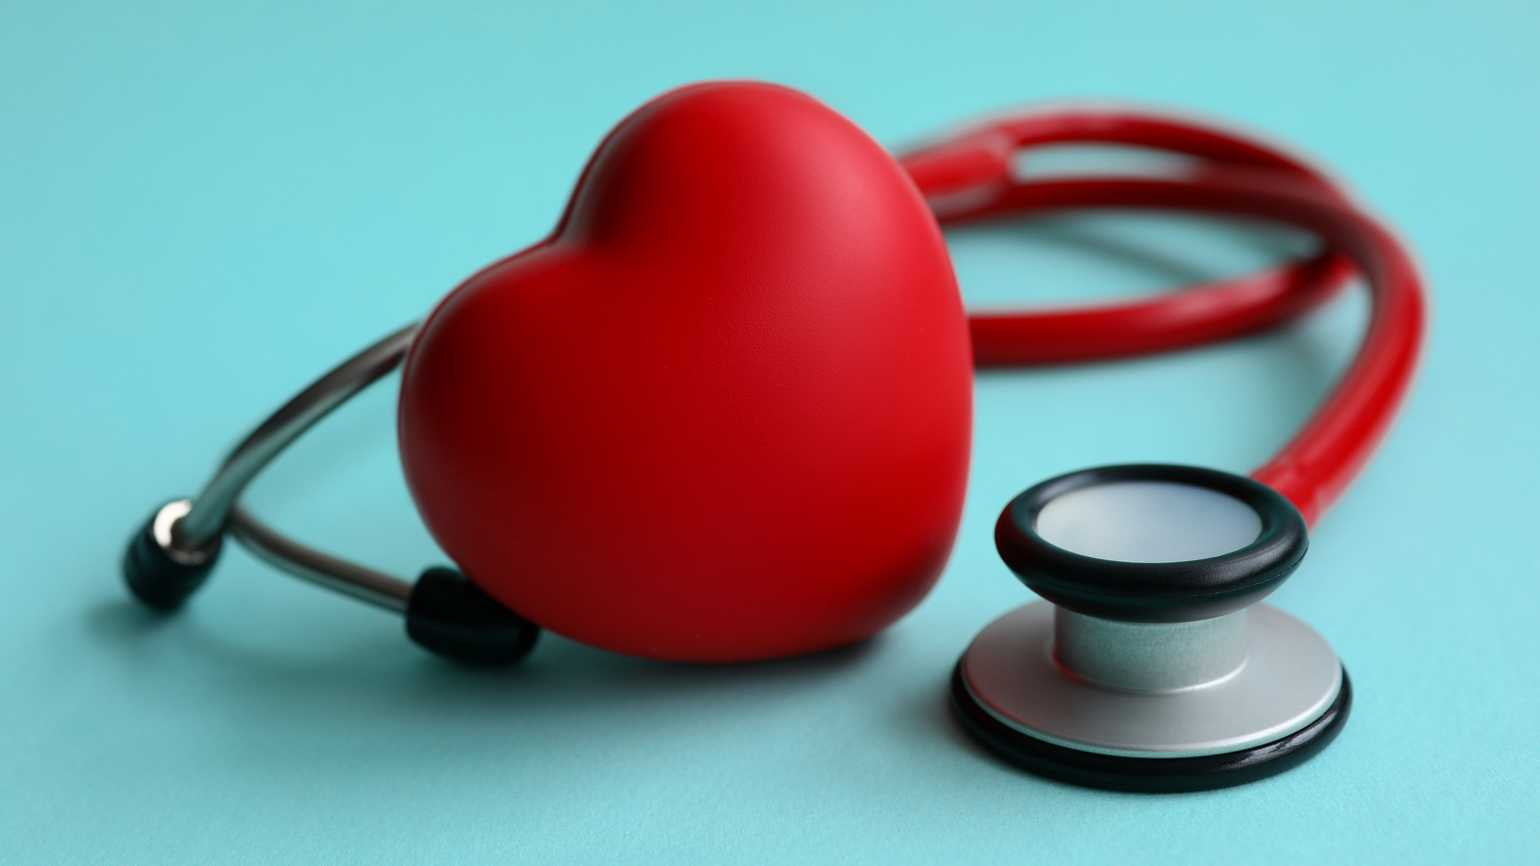 A heart with a stethoscope; Getty Images